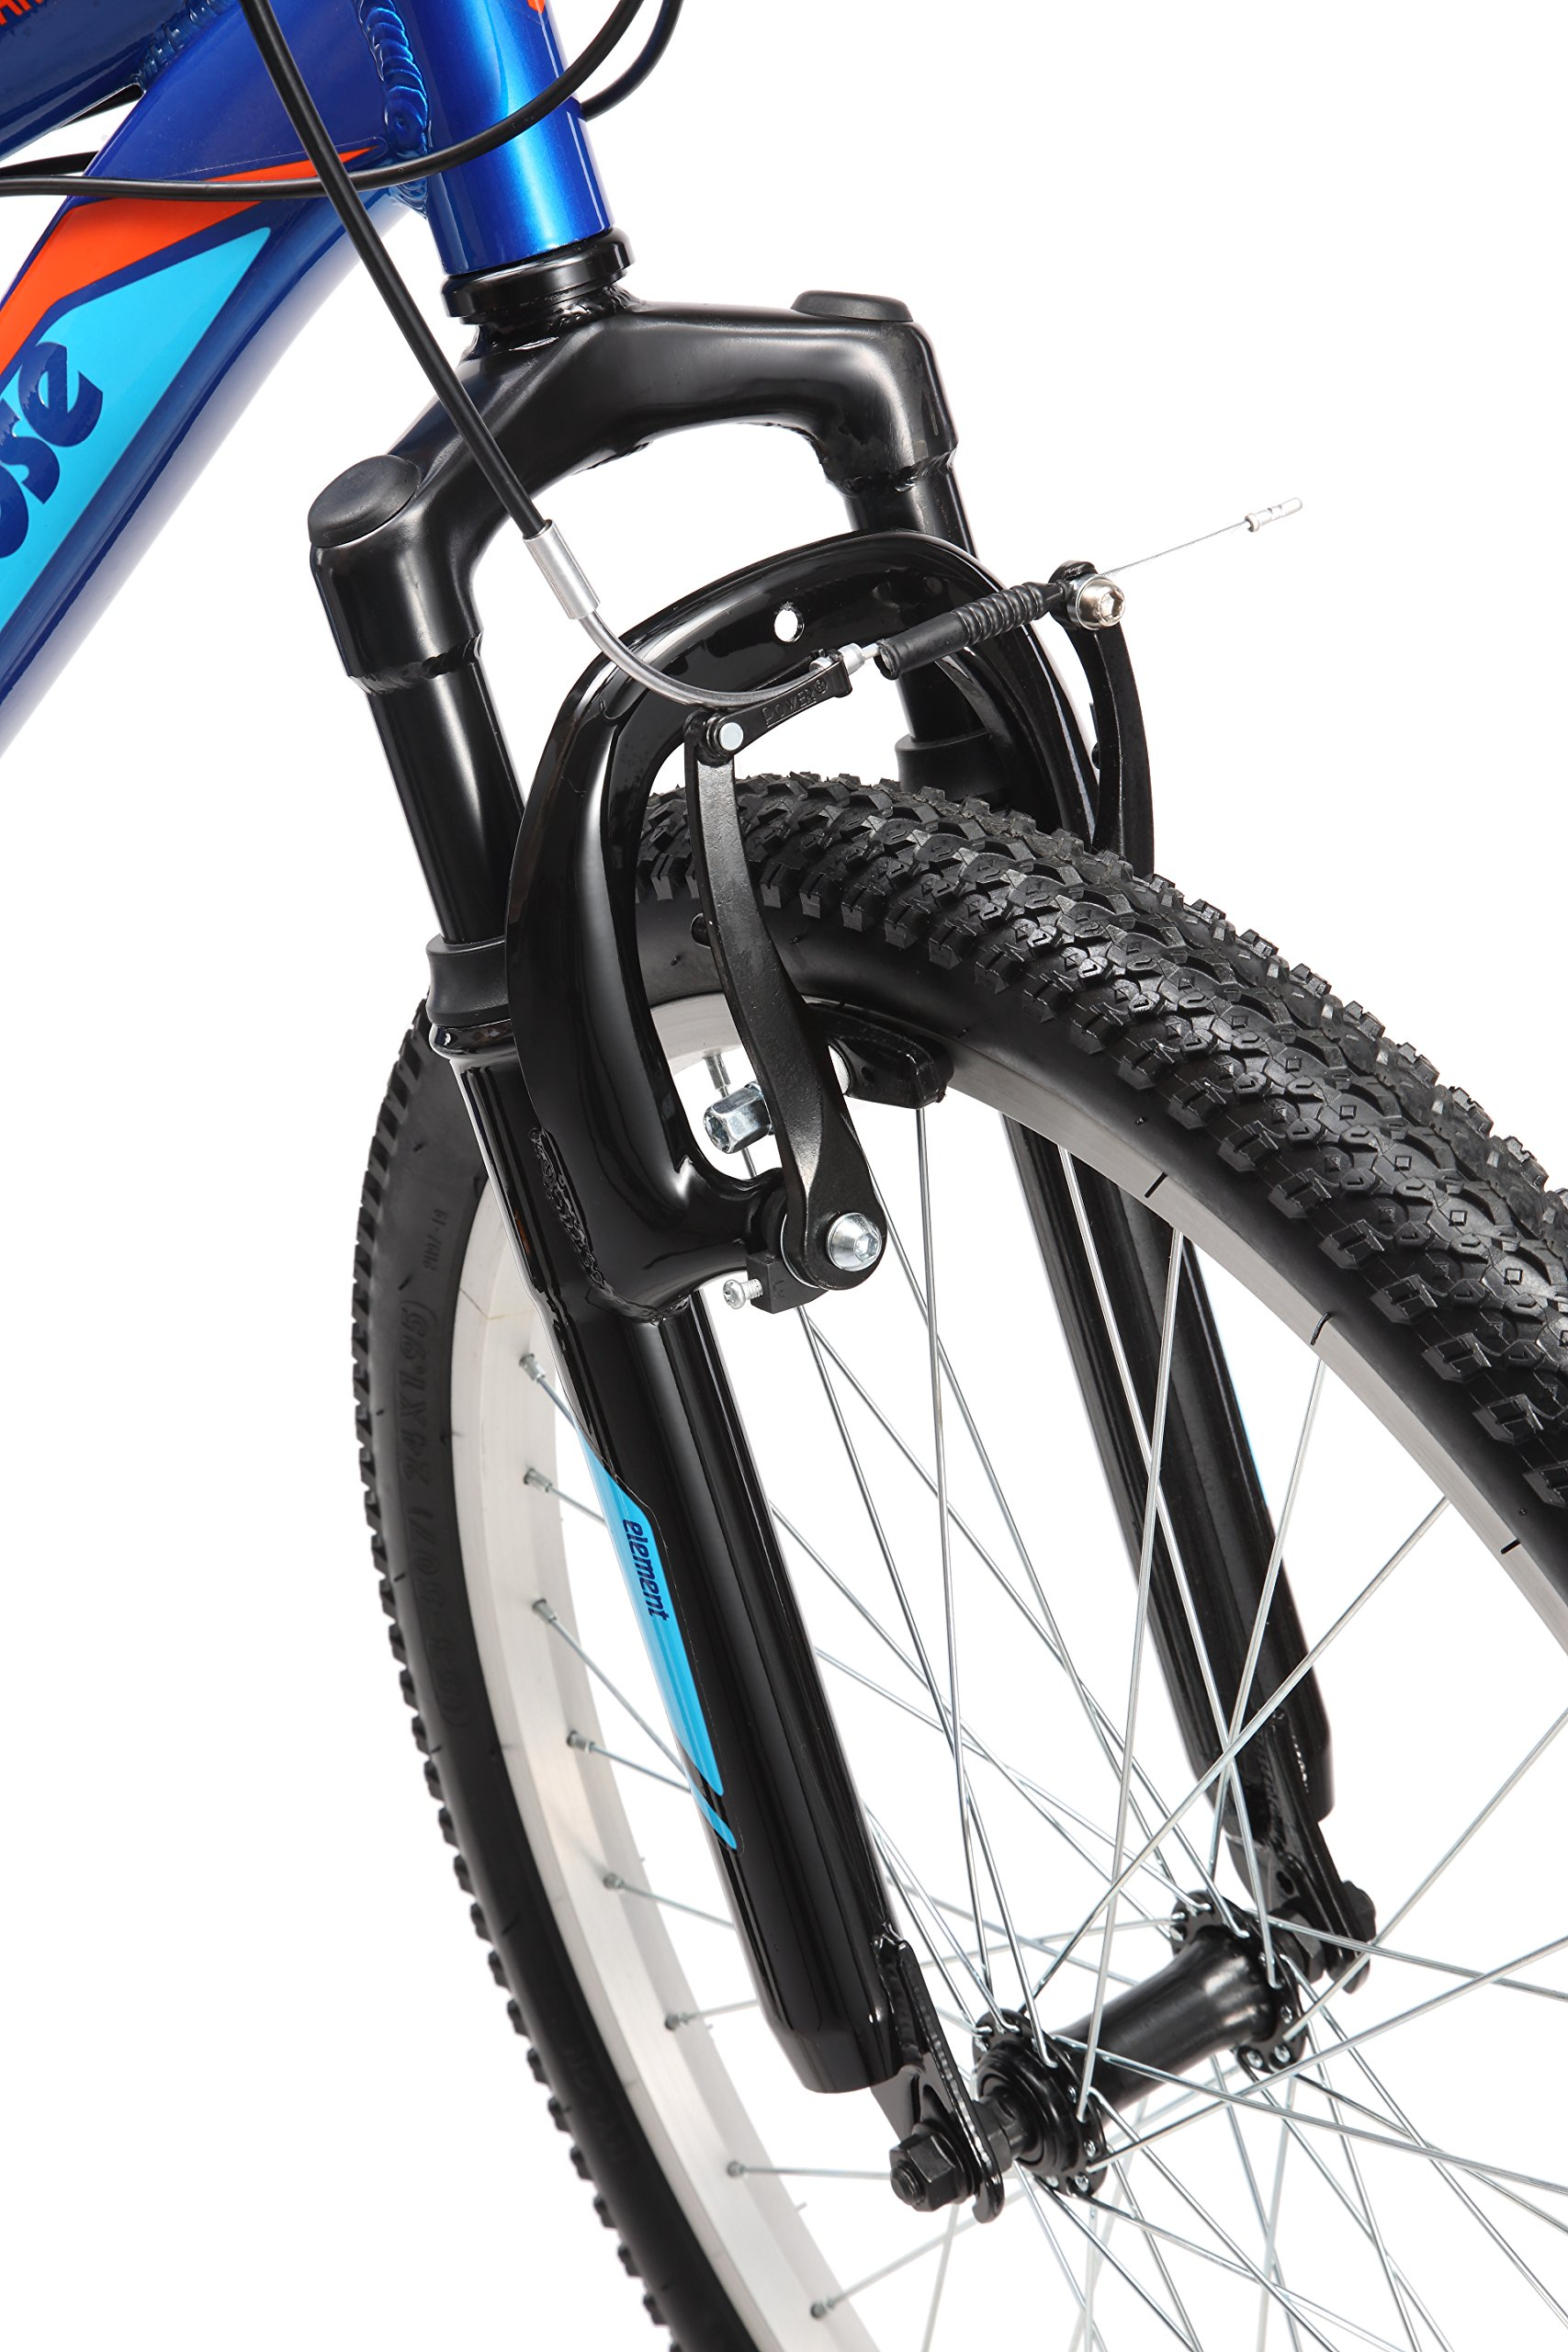 Mongoose Camrock 24'' Wheel Mountain Bicycle, Blue, One Size by Mongoose (Image #5)